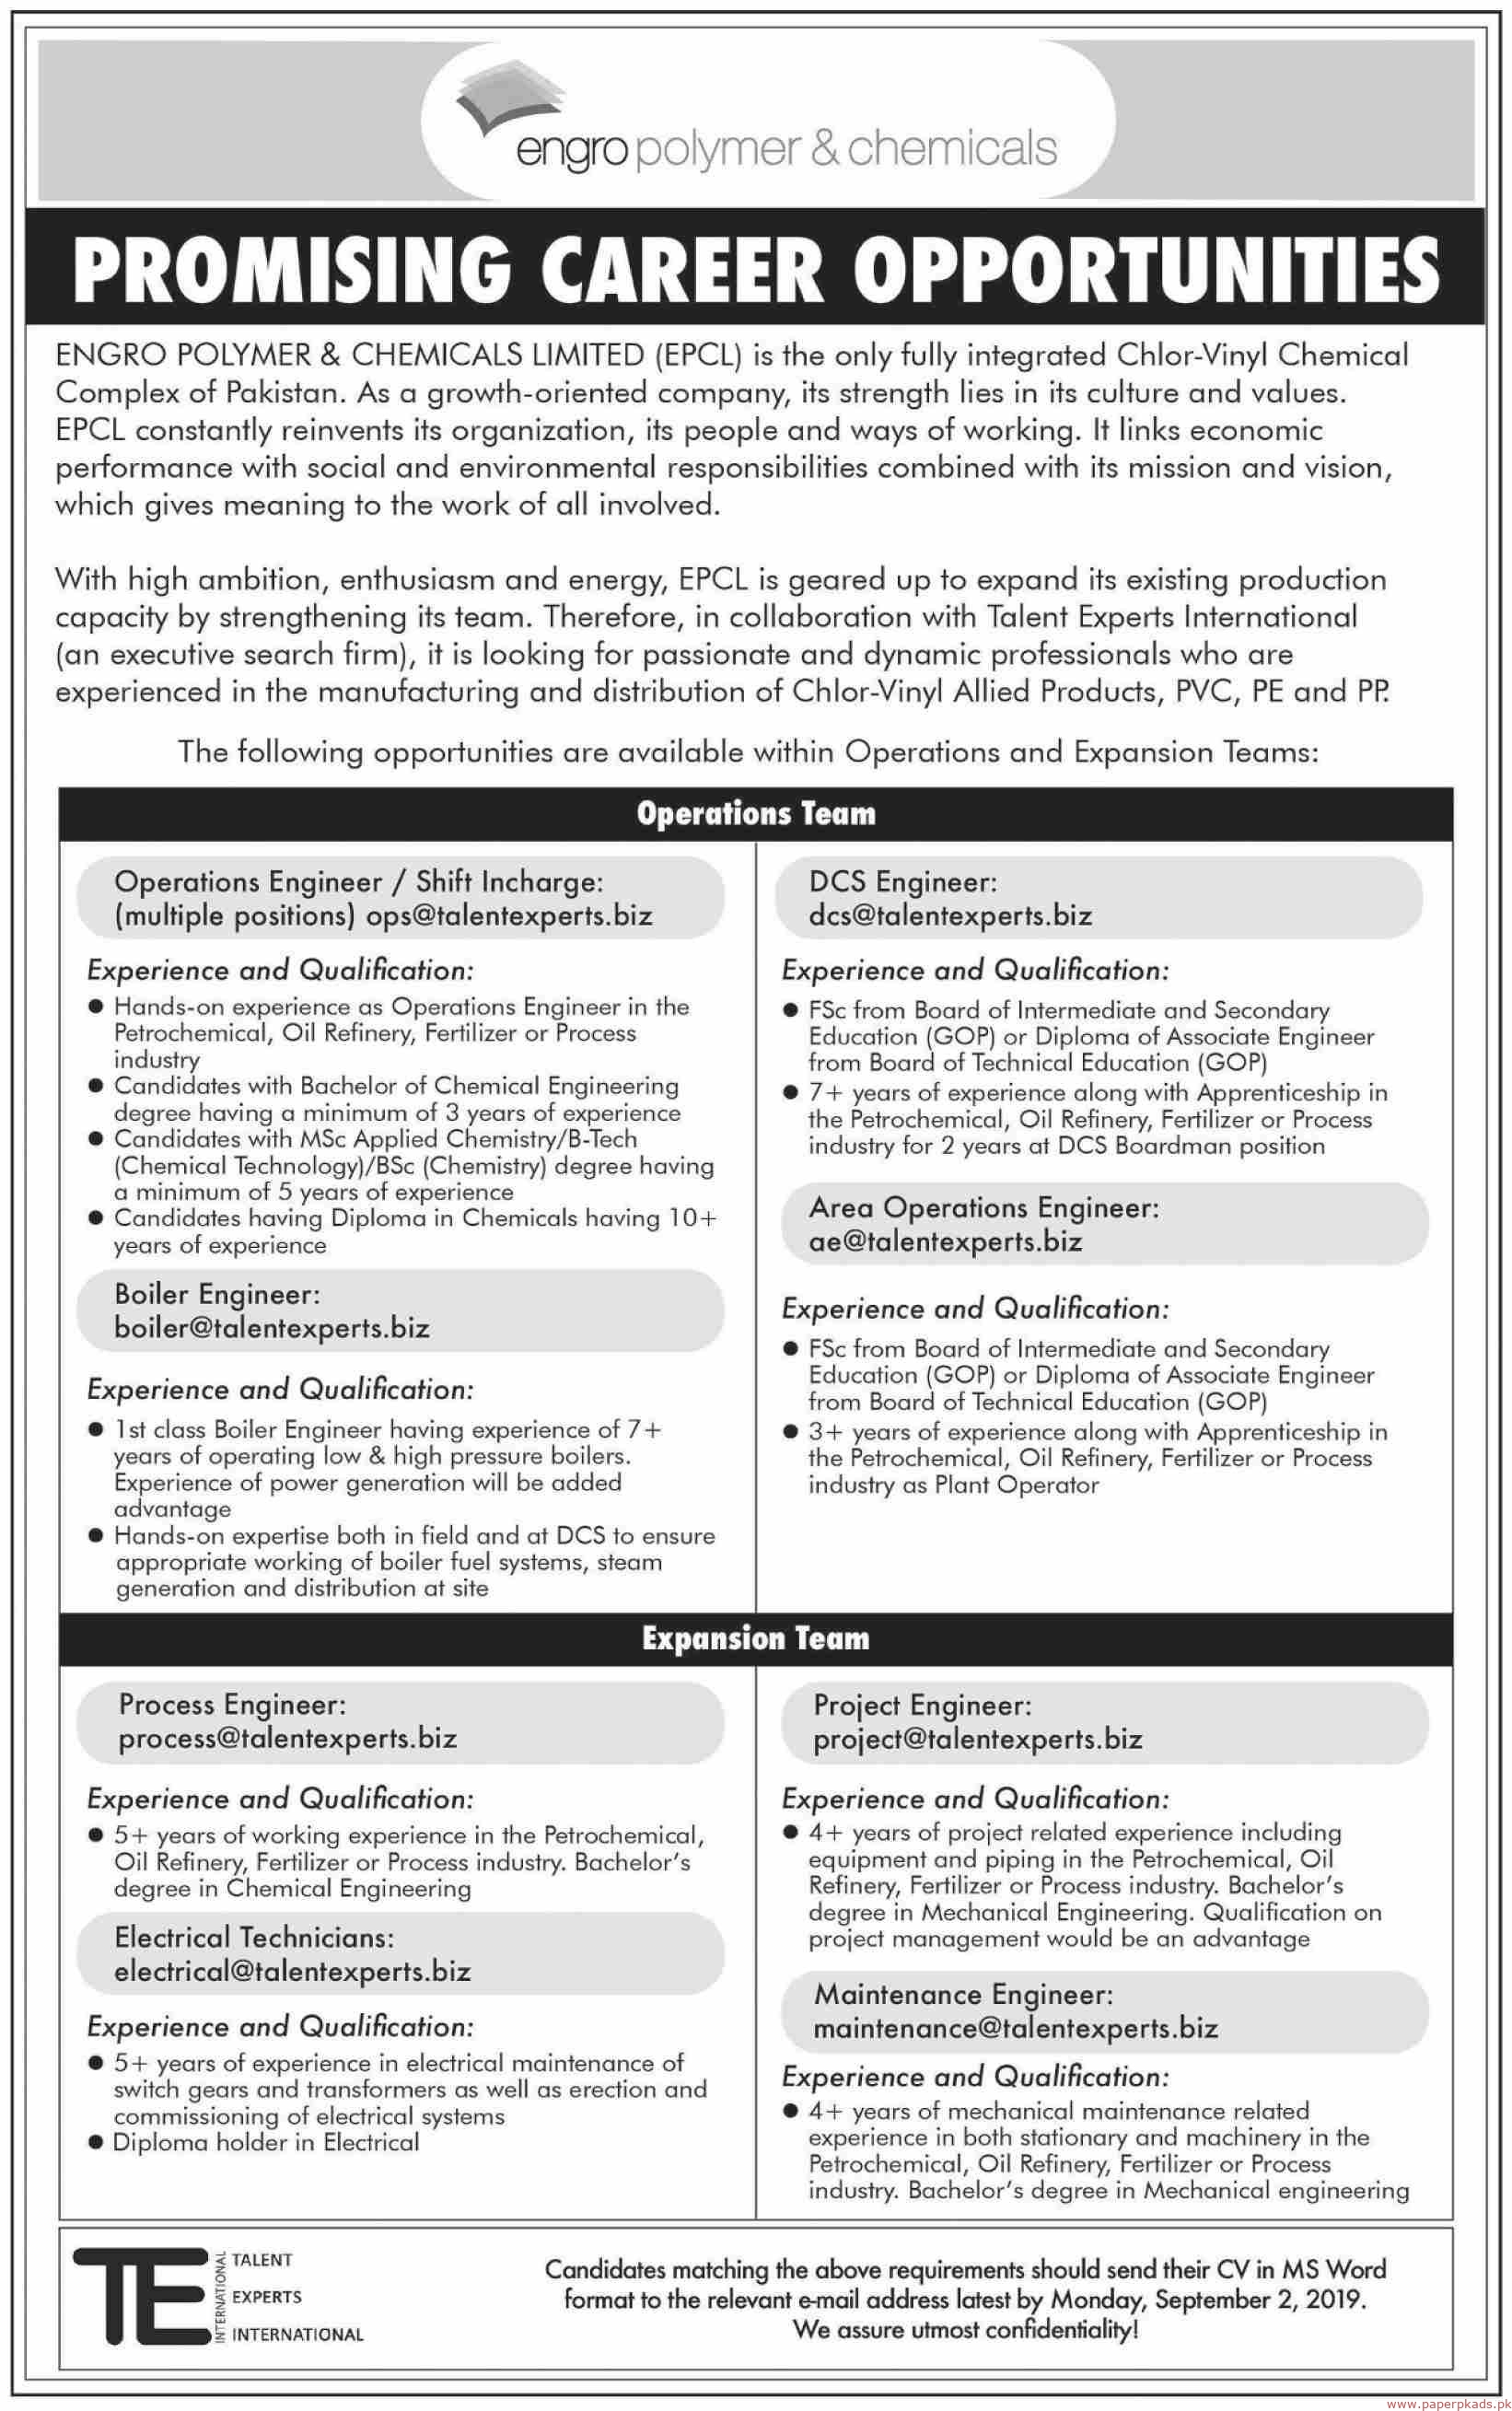 Engro Polymer & Chemicals Limited EPCL Jobs 2019 Latest